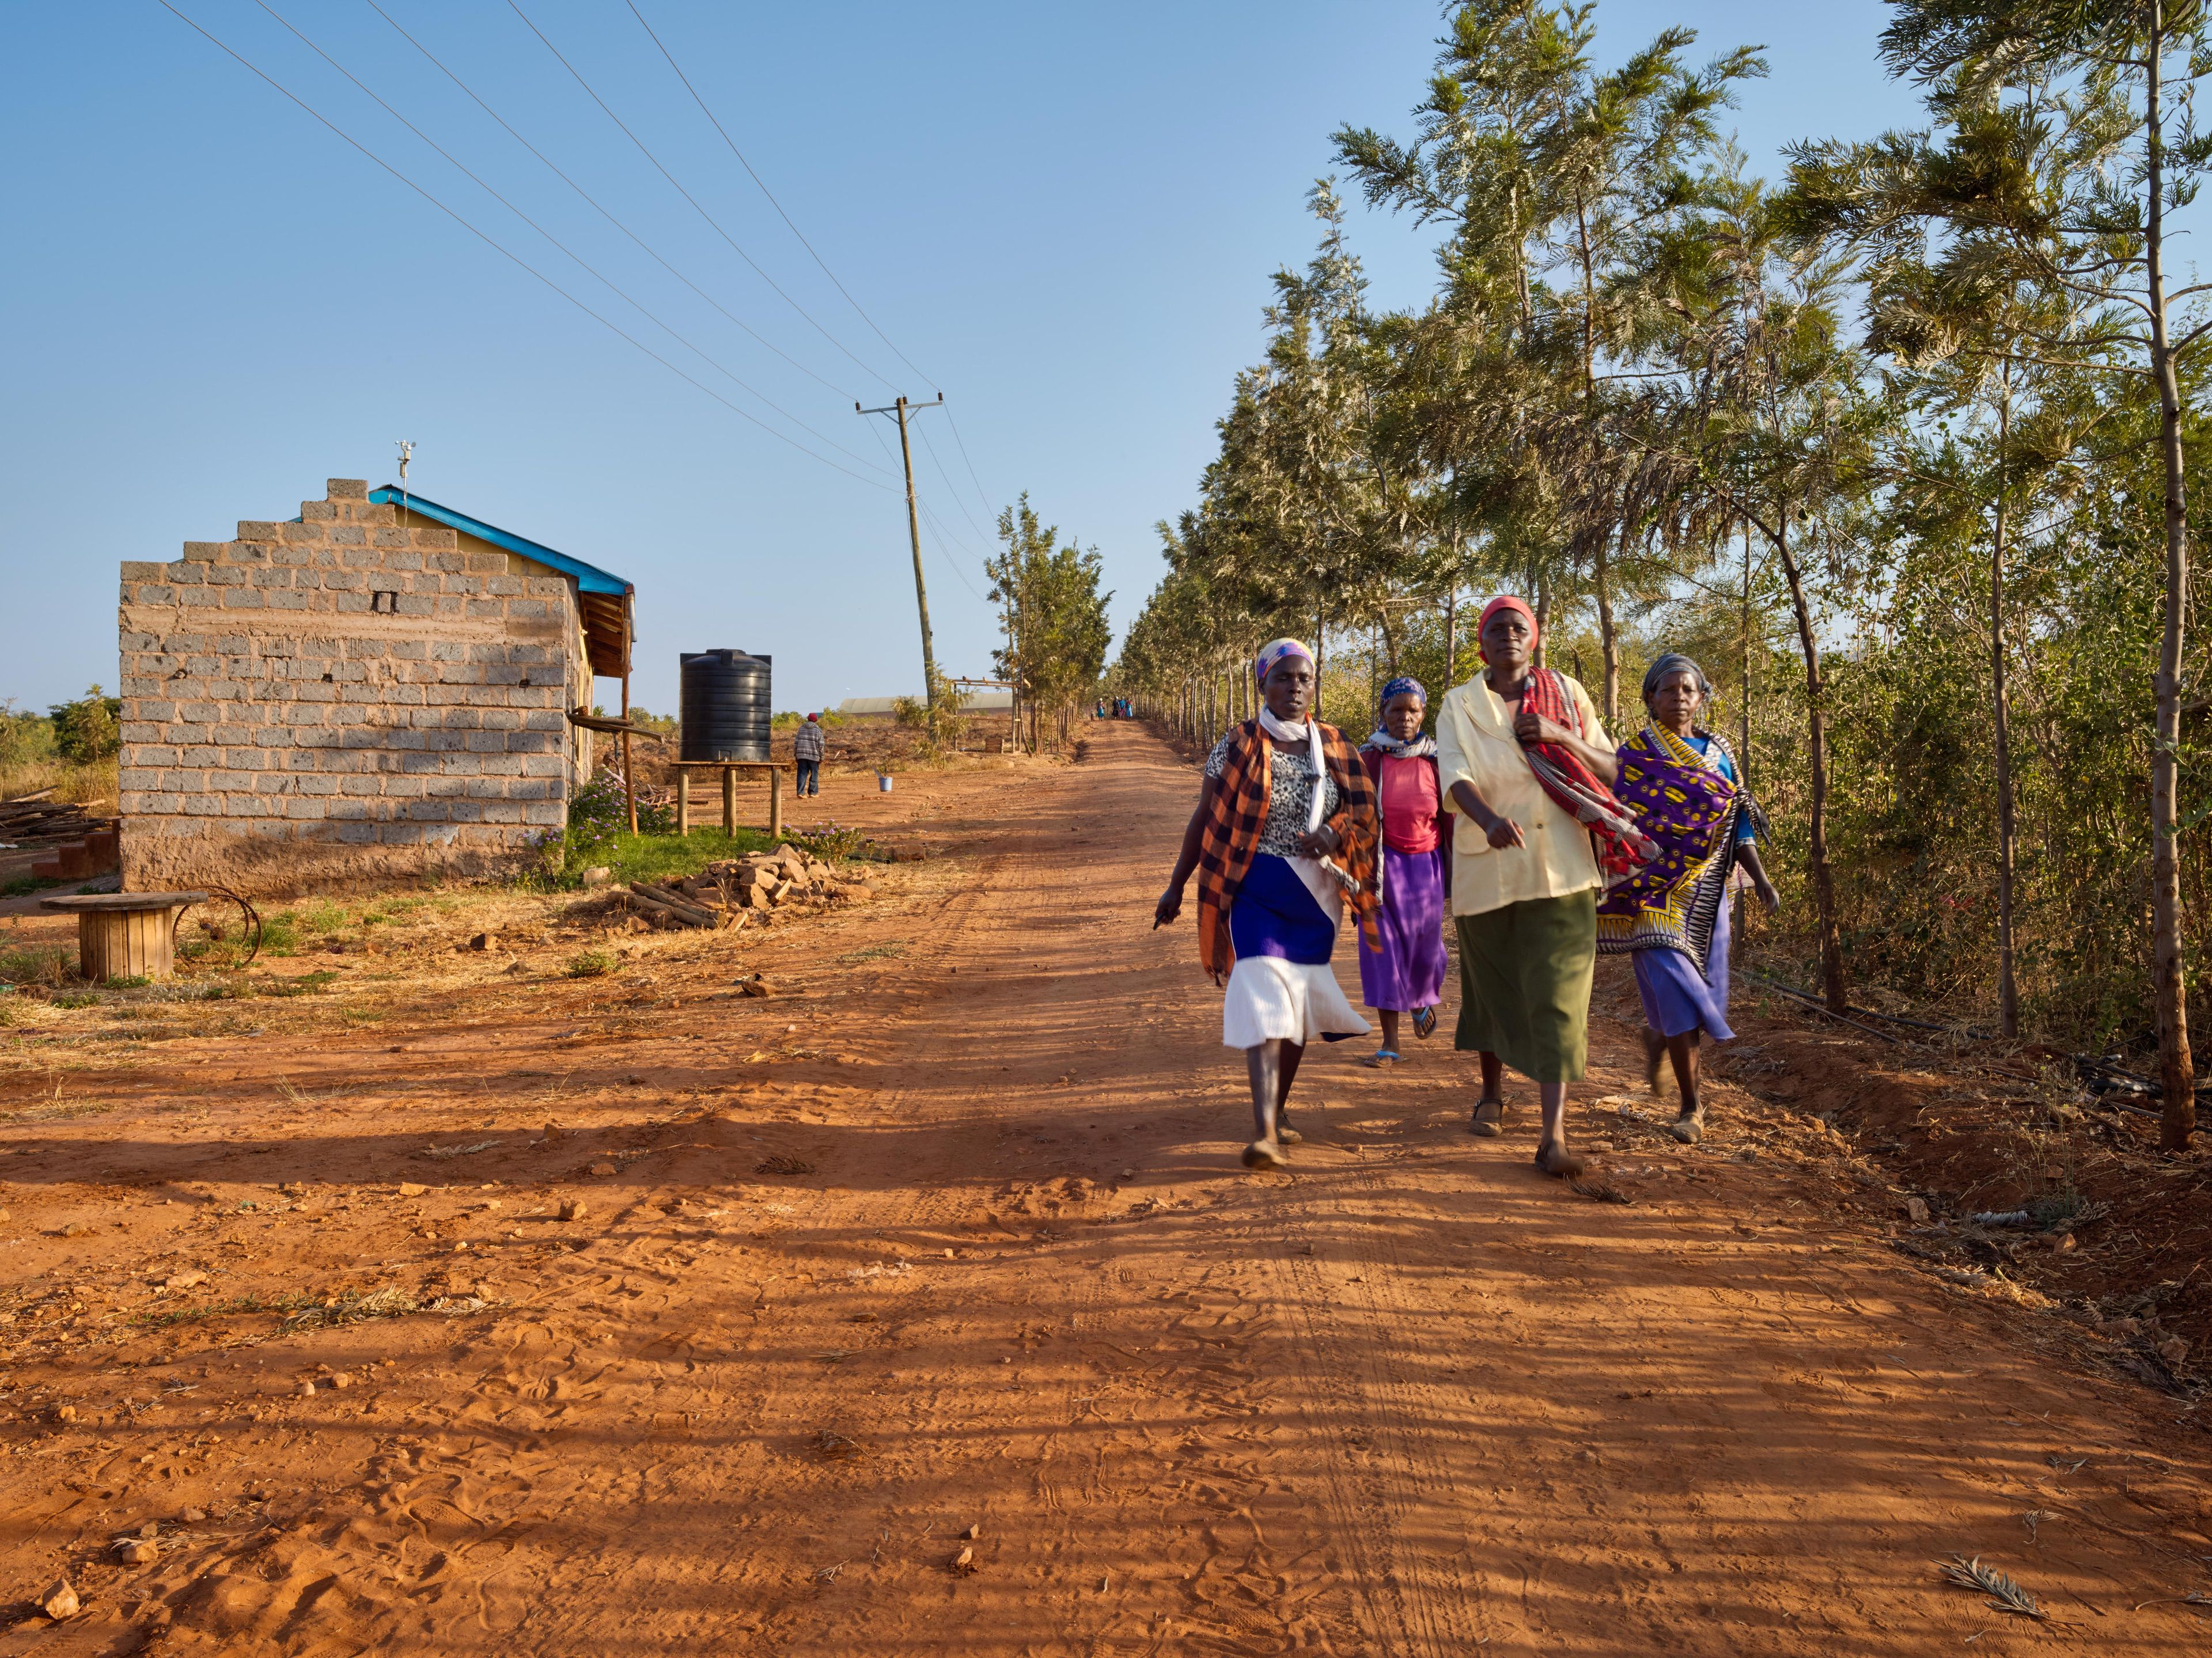 Sies Partners with Nature - Africa